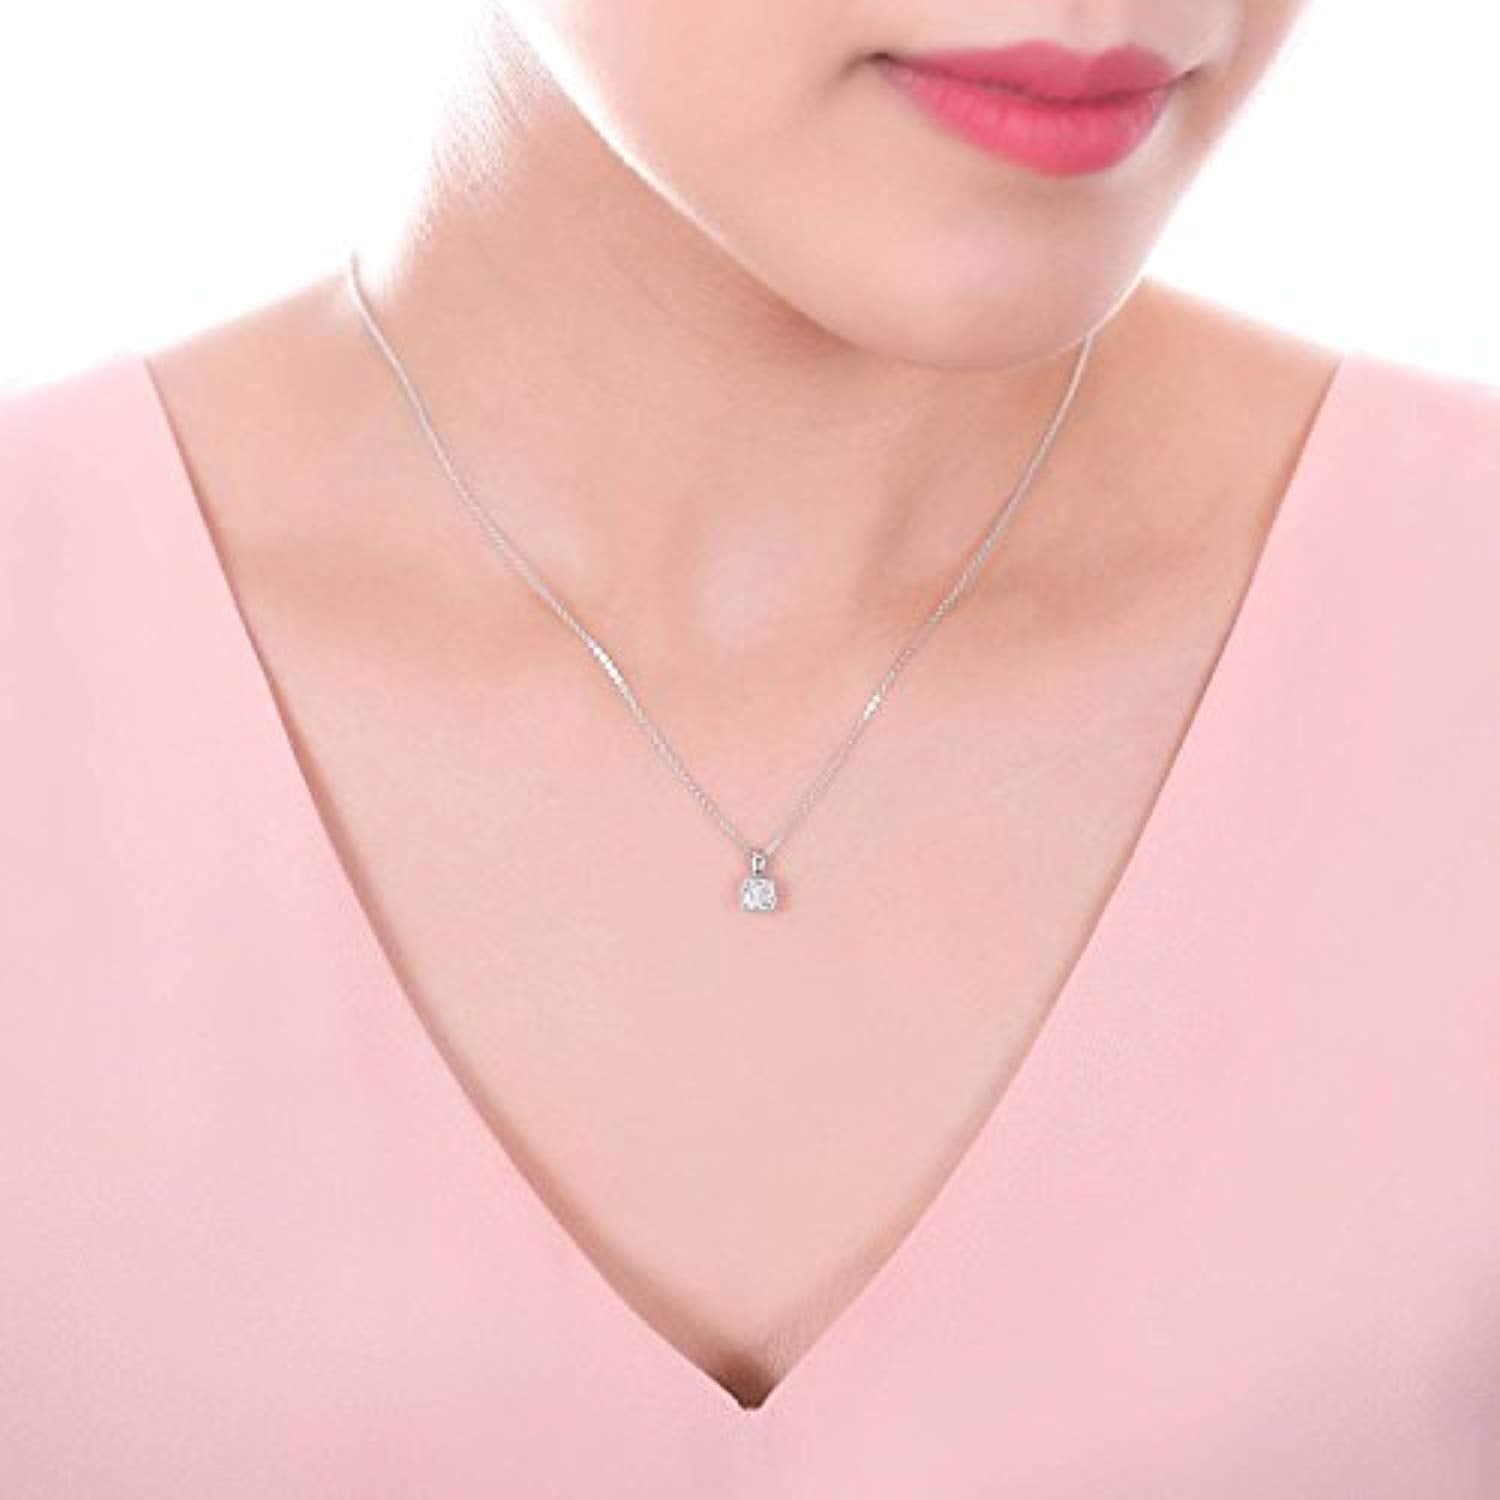 Rhodium Plated Sterling Silver Cushion Cut  CZ Pendant Necklace